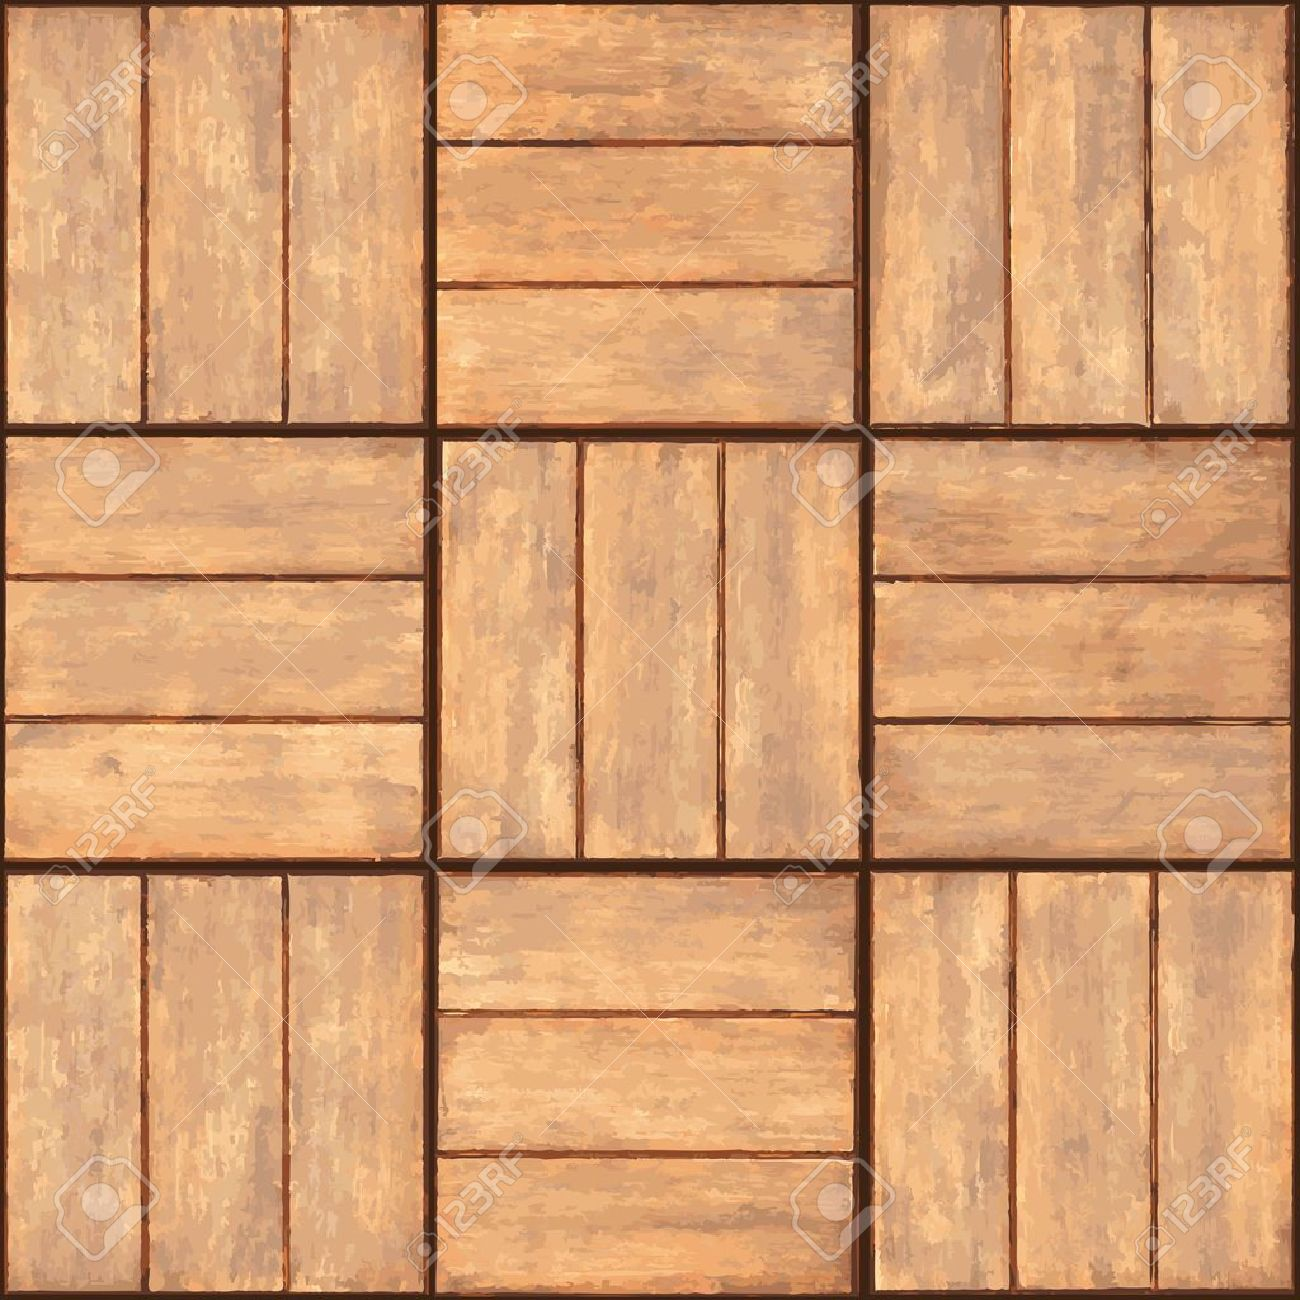 Simple wood tile flooring texture with download tiles wooden d and wood tile flooring texture dailygadgetfo Image collections